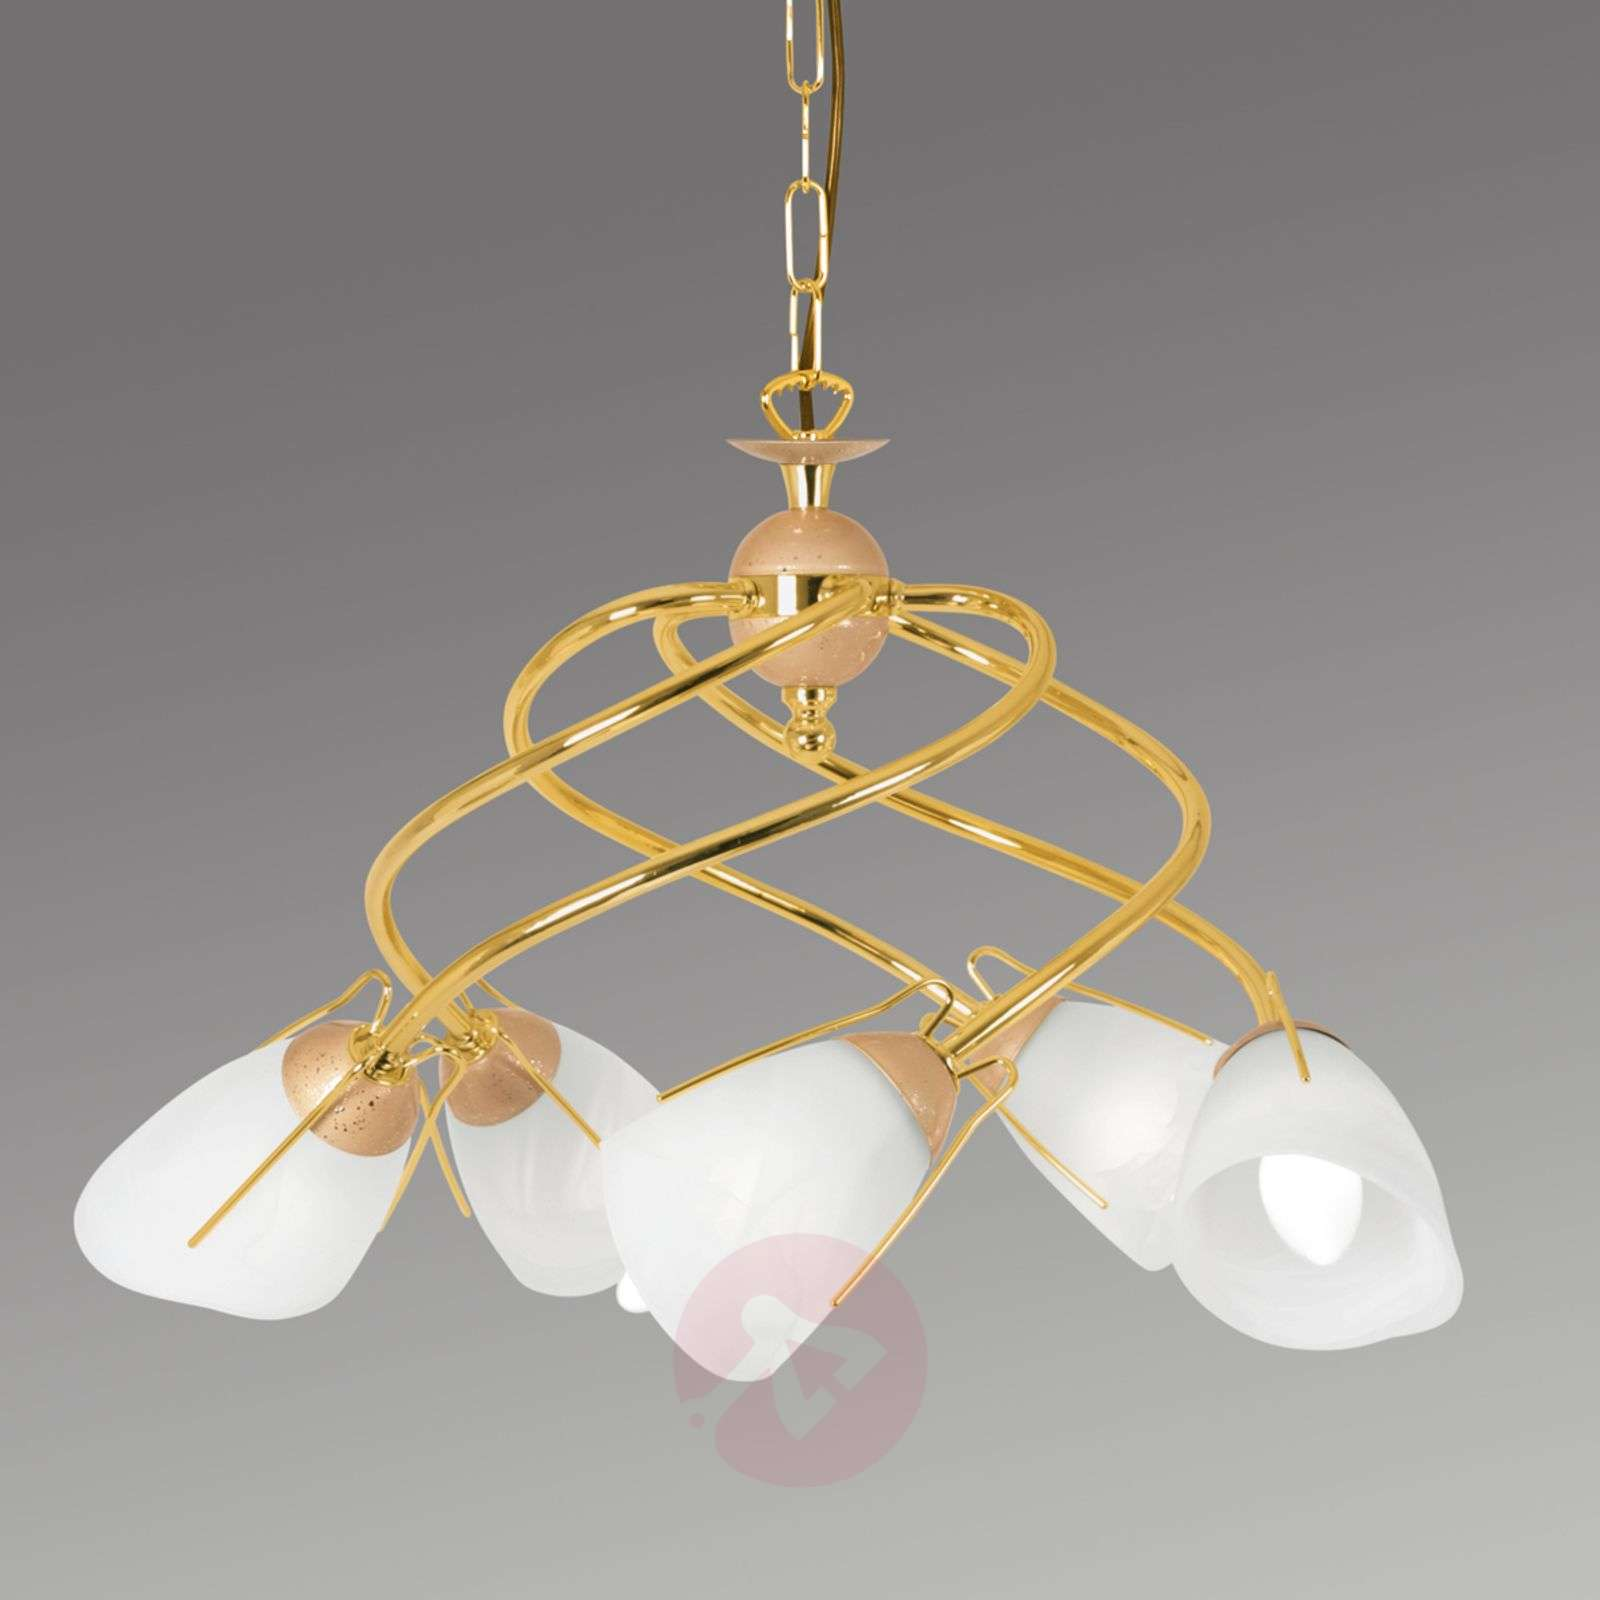 Gold coloured pendant light rondo lights gold coloured pendant light rondo 6089045 01 aloadofball Images